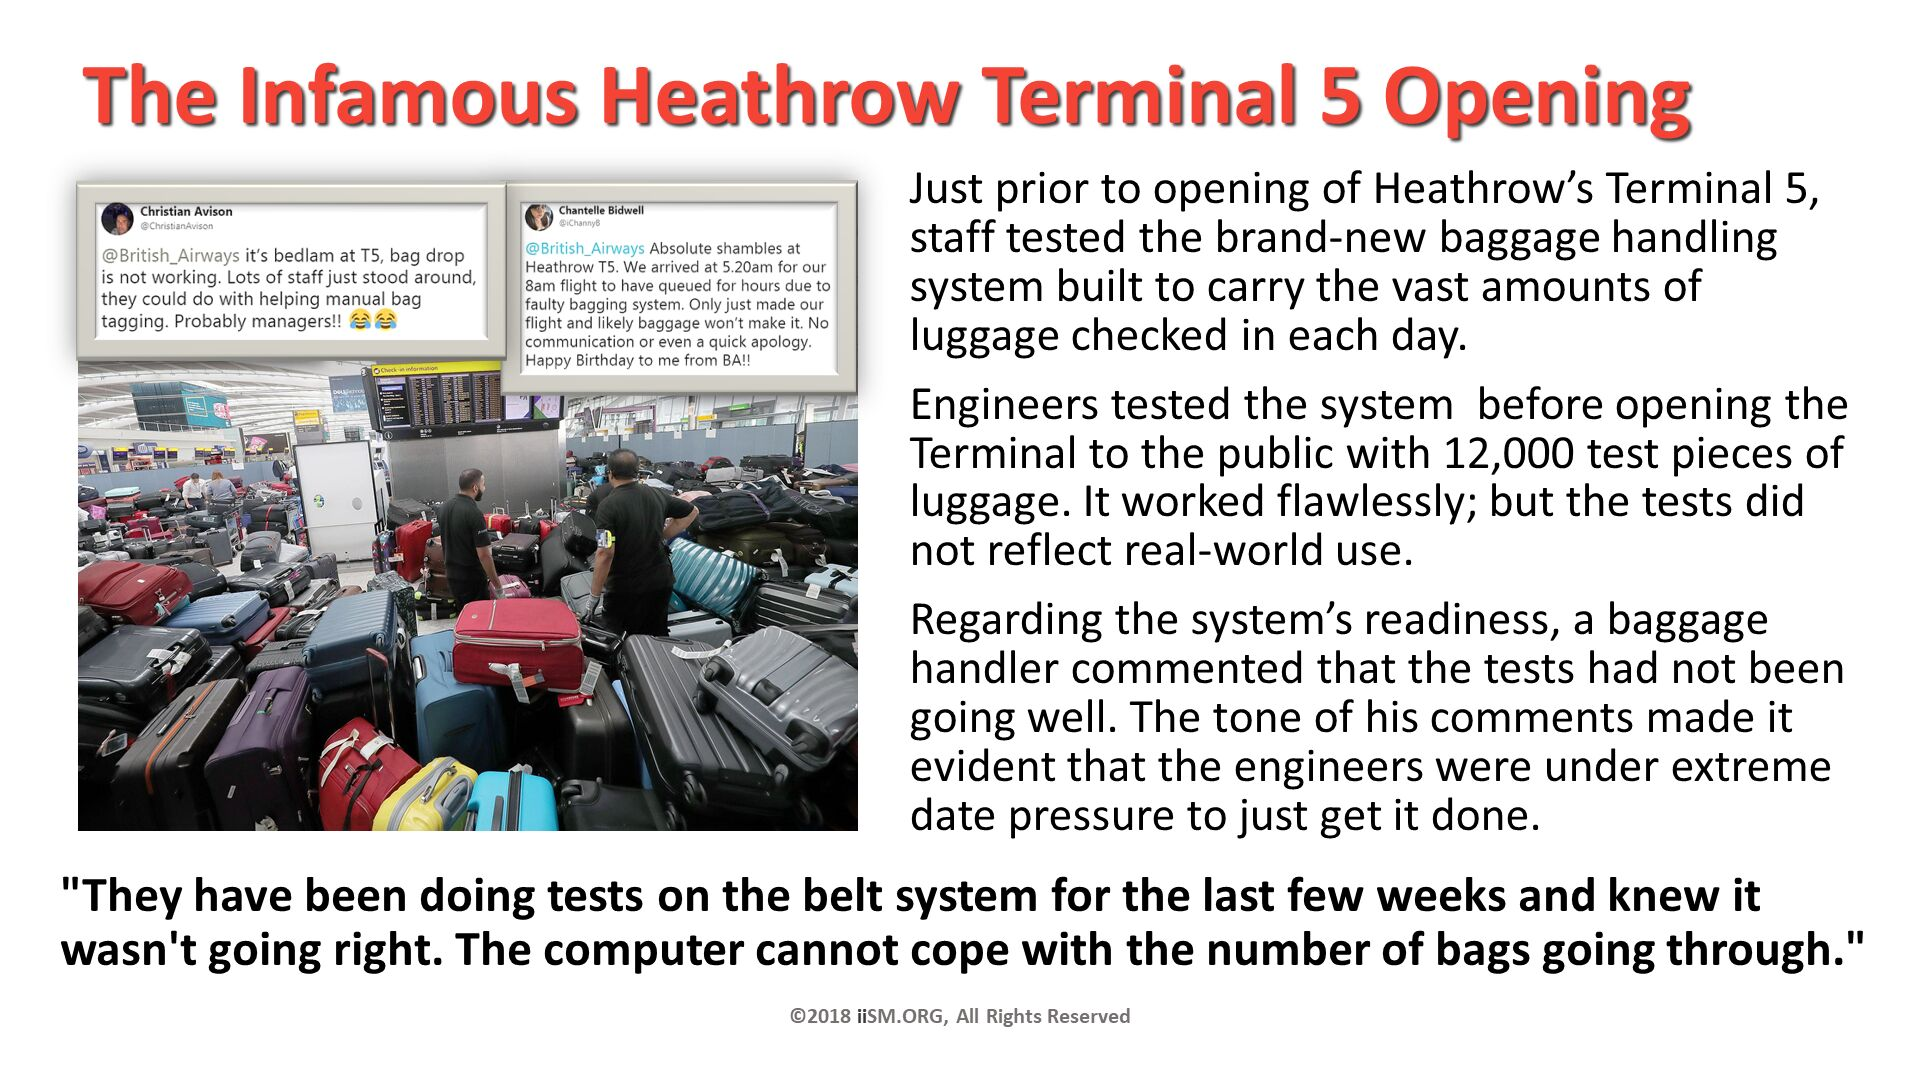 "The Infamous Heathrow Terminal 5 Opening. Just prior to opening of Heathrow's Terminal 5,staff tested the brand-new baggage handling system built to carry the vast amounts of luggage checked in each day.  Engineers tested the system  before opening the Terminal to the public with 12,000 test pieces of luggage. It worked flawlessly; but the tests did not reflect real-world use. Regarding the system's readiness, a baggage handler commented that the tests had not been going well. The tone of his comments made it evident that the engineers were under extreme date pressure to just get it done. ©2018 iiSM.ORG, All Rights Reserved. ""They have been doing tests on the belt system for the last few weeks and knew it wasn't going right. The computer cannot cope with the number of bags going through.""."